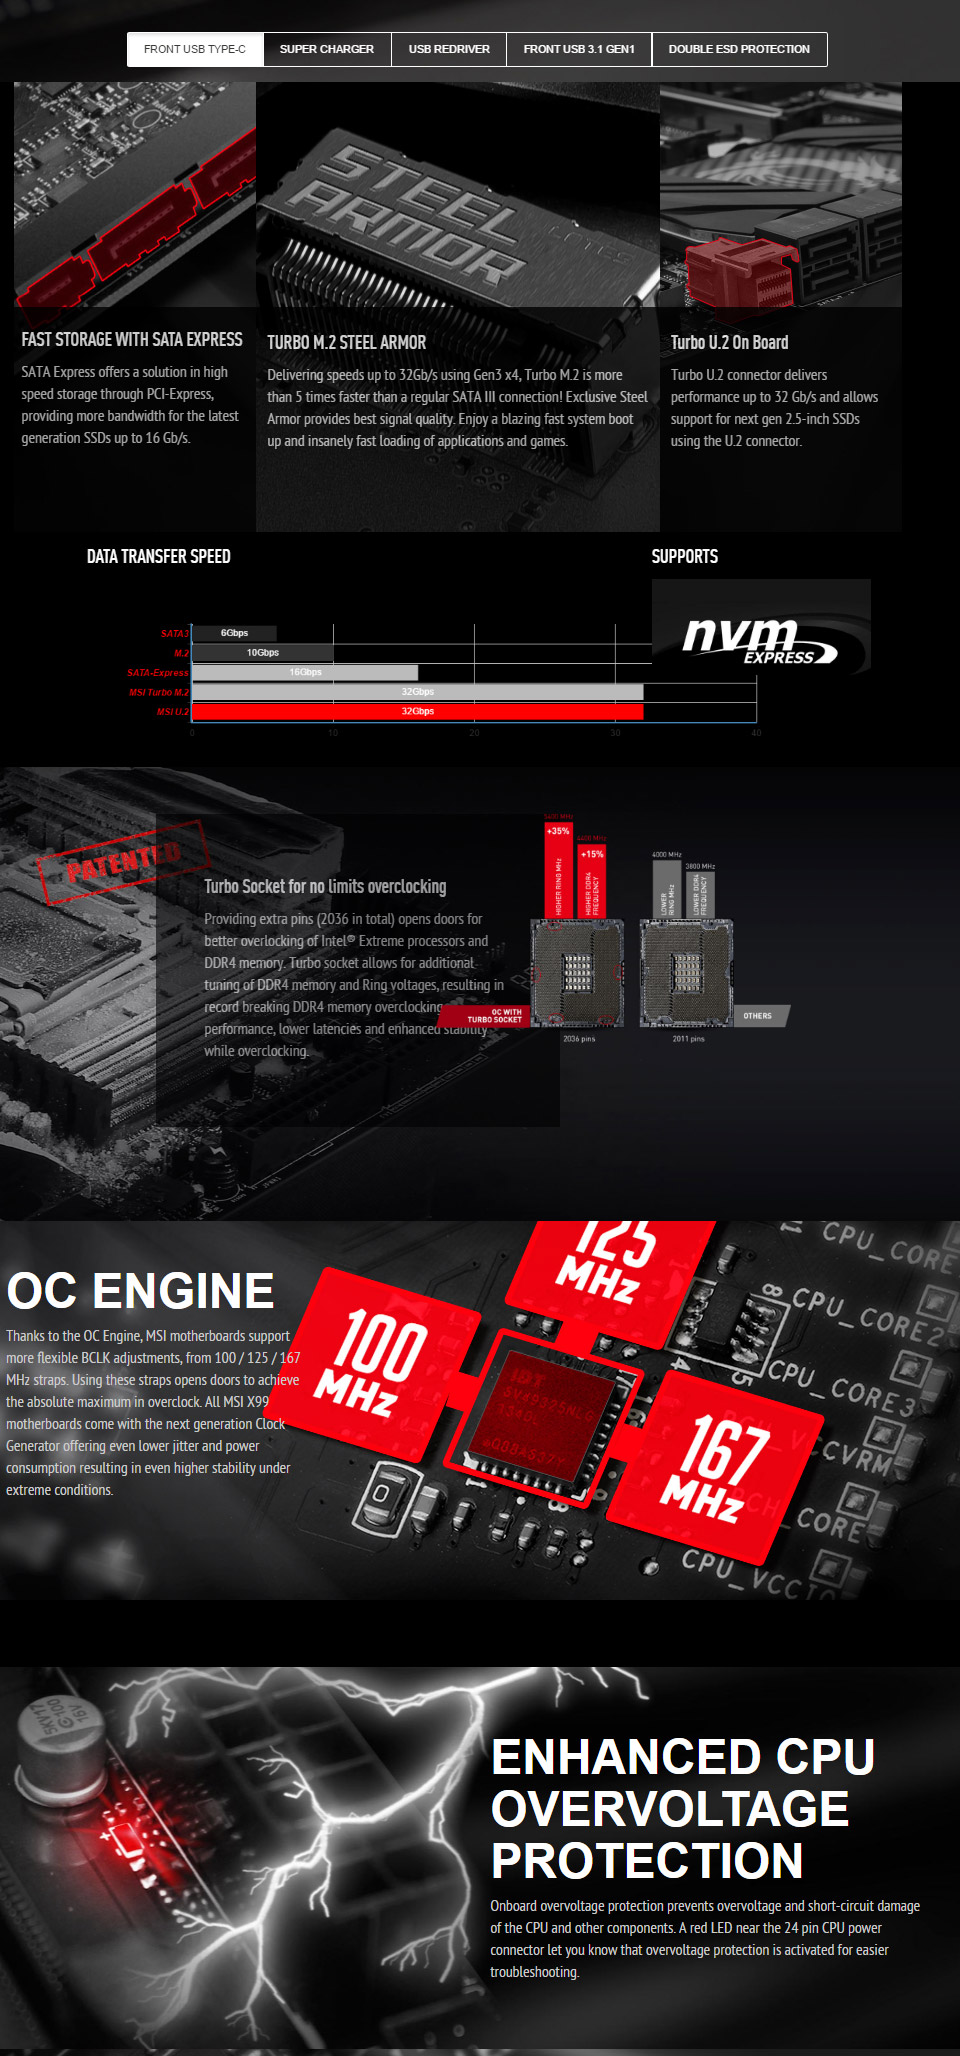 MSI X99A Gaming Pro Carbon RGB Motherboard